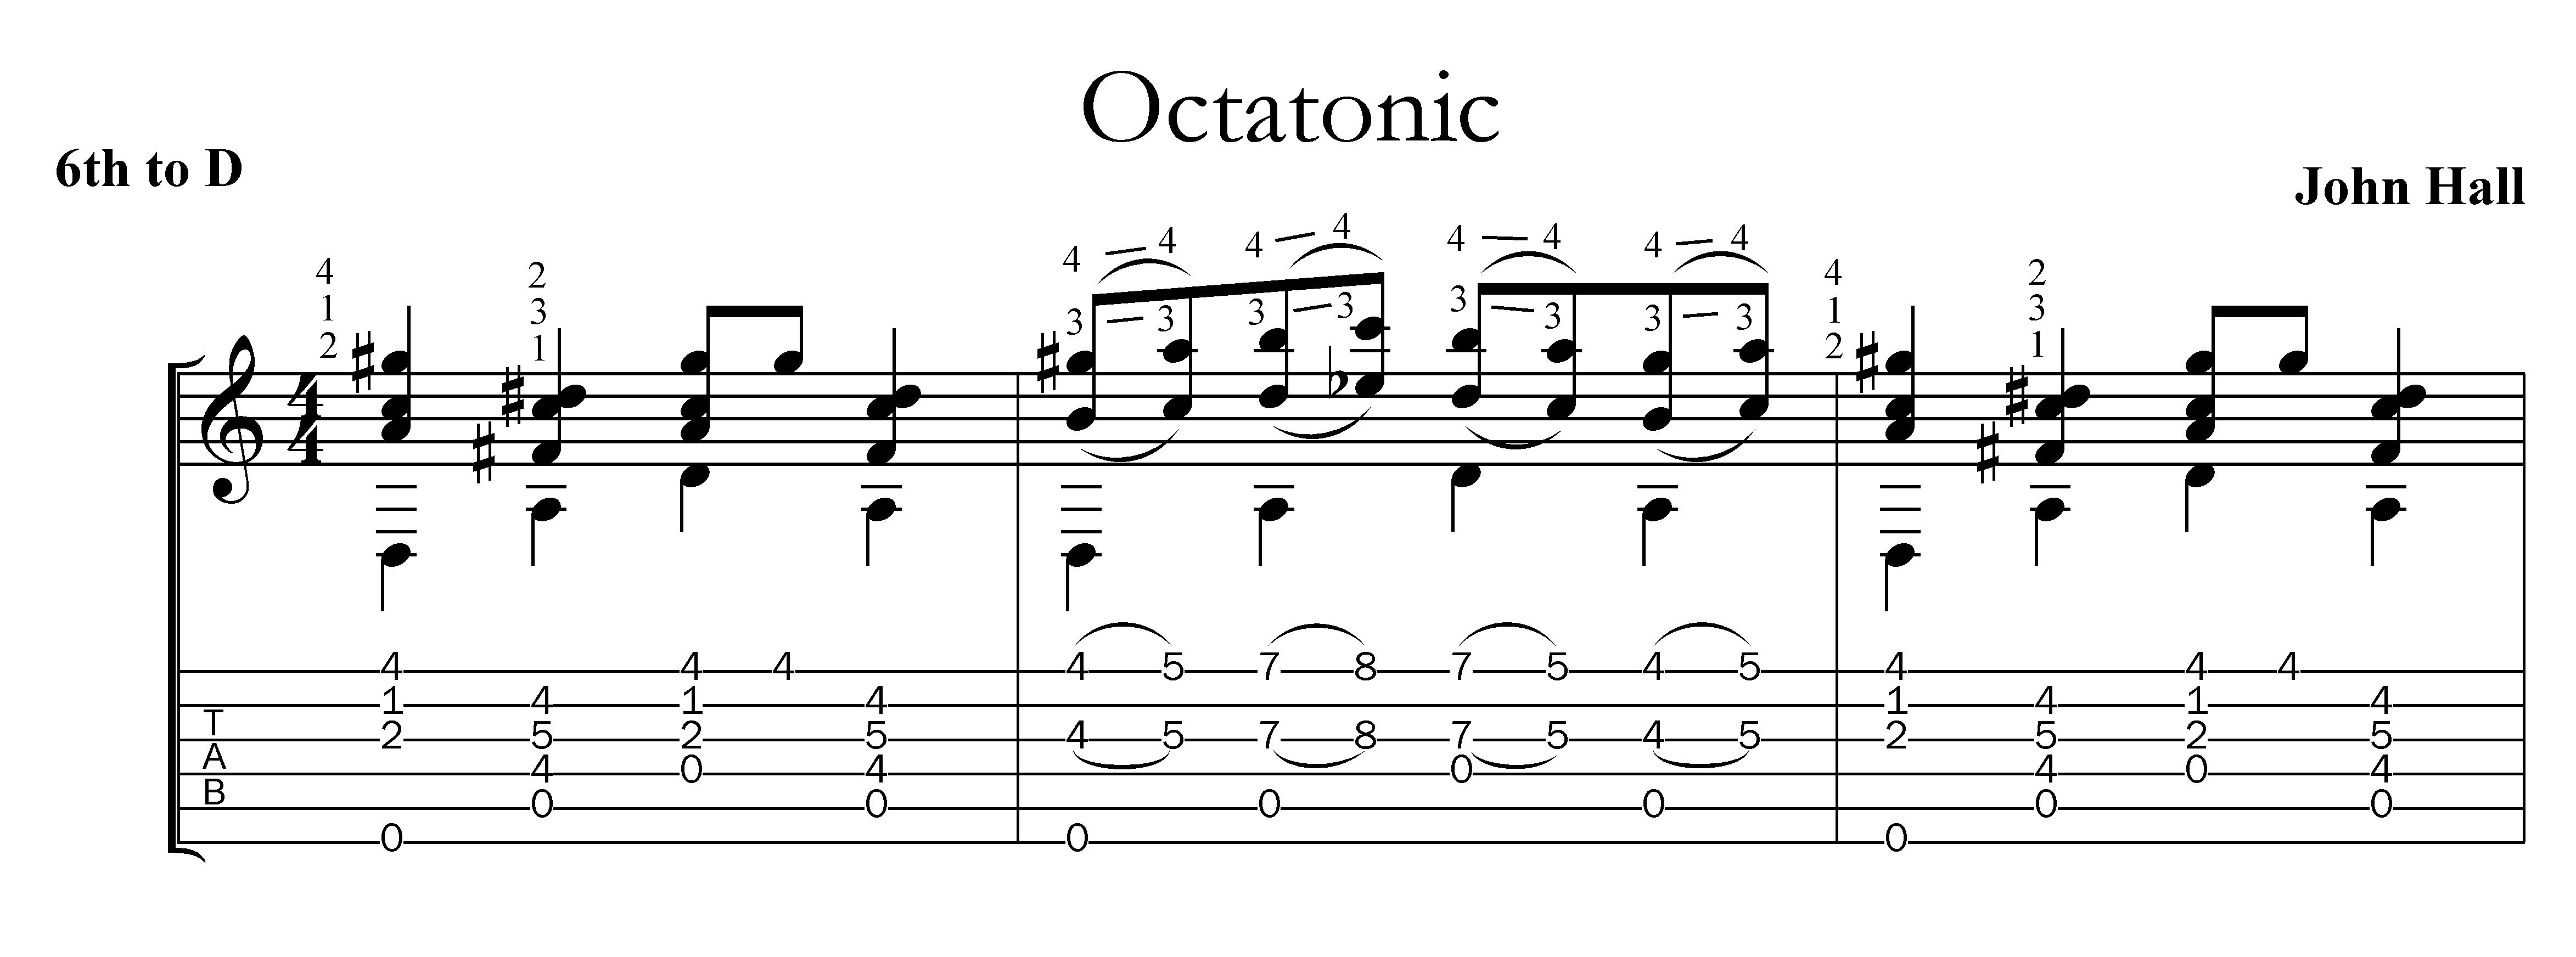 Image Result For Octatonic Scale Guitar Sheet Music Music Guitar